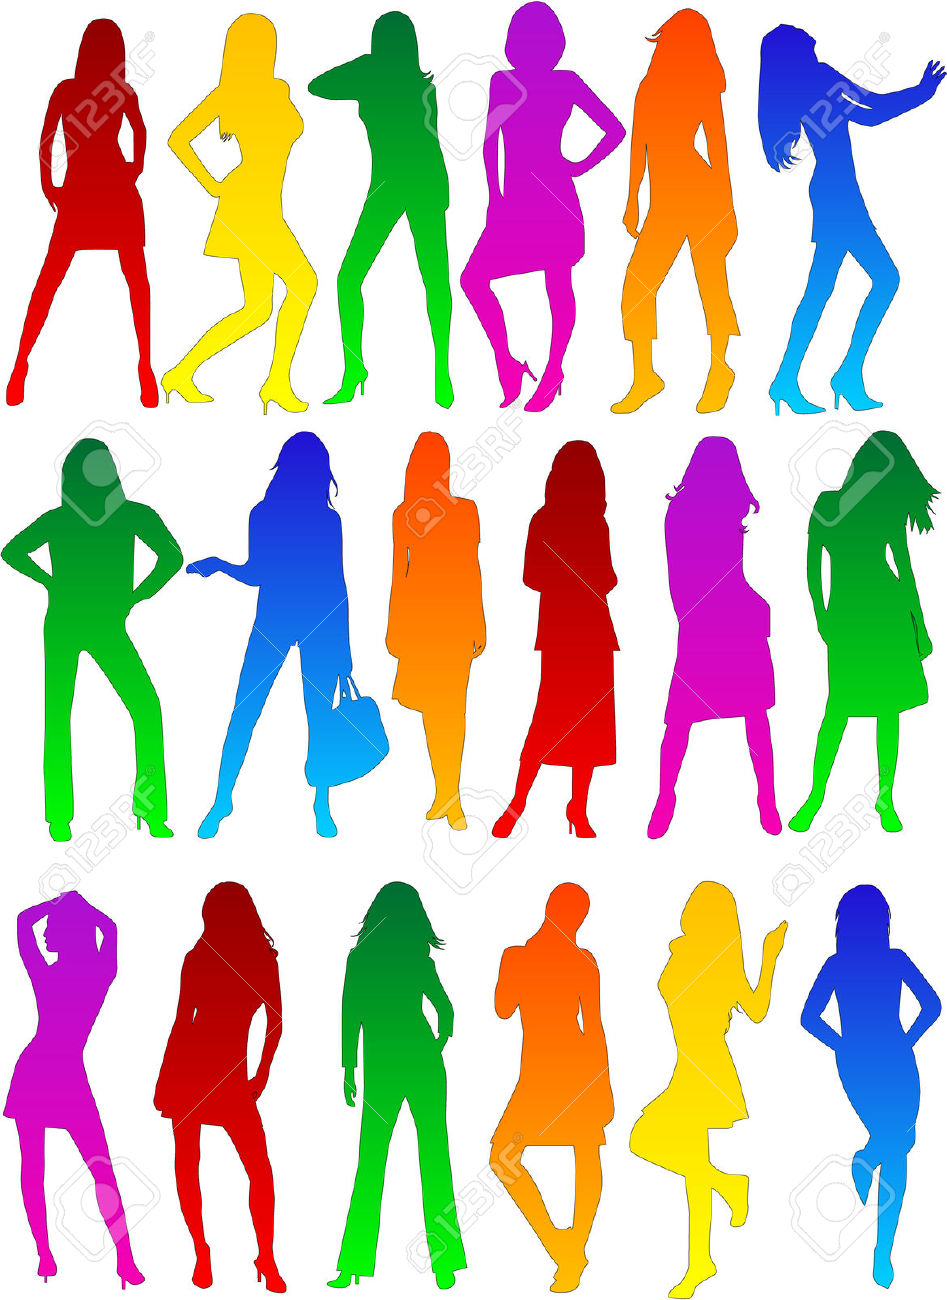 Lady's Profiles Fashion Show , Vectors Work Royalty Free Cliparts.